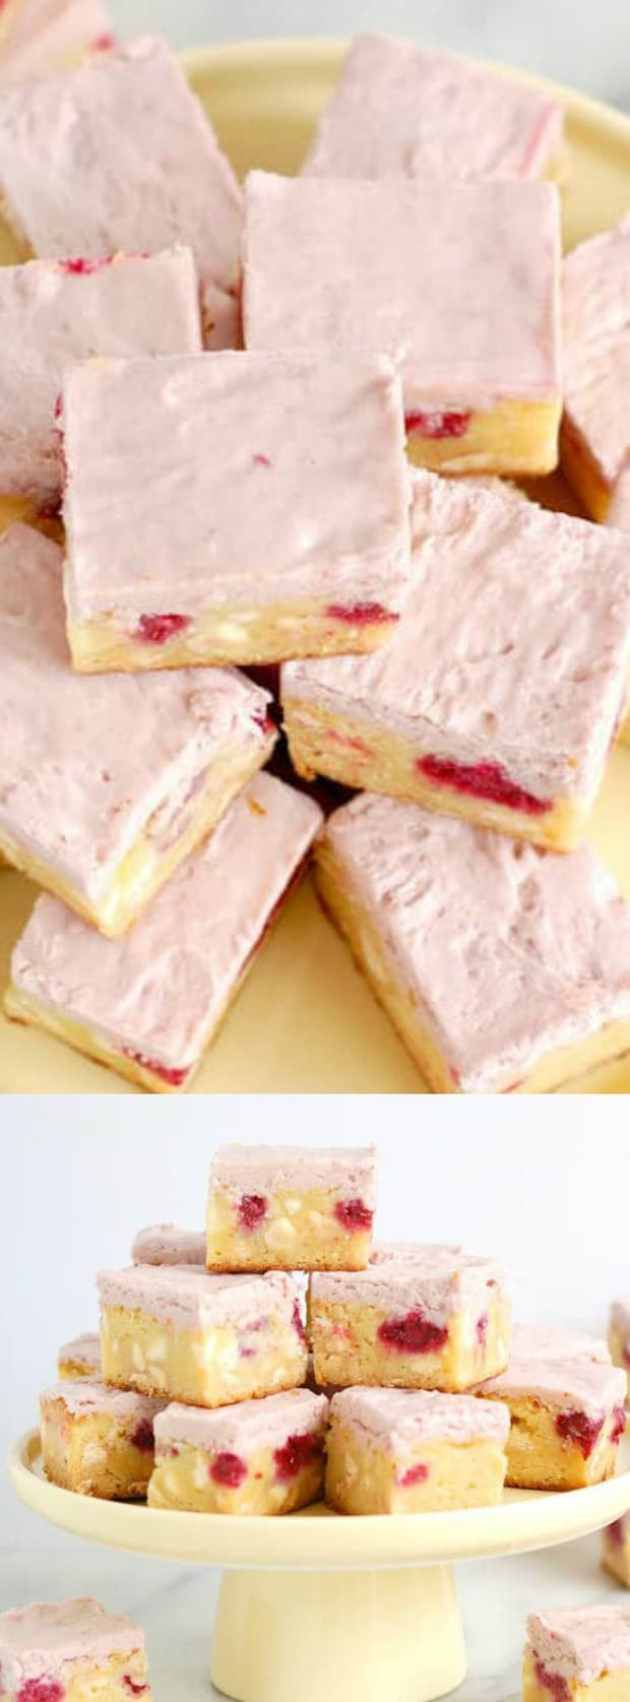 white chocolate brownies with raspberries longpin